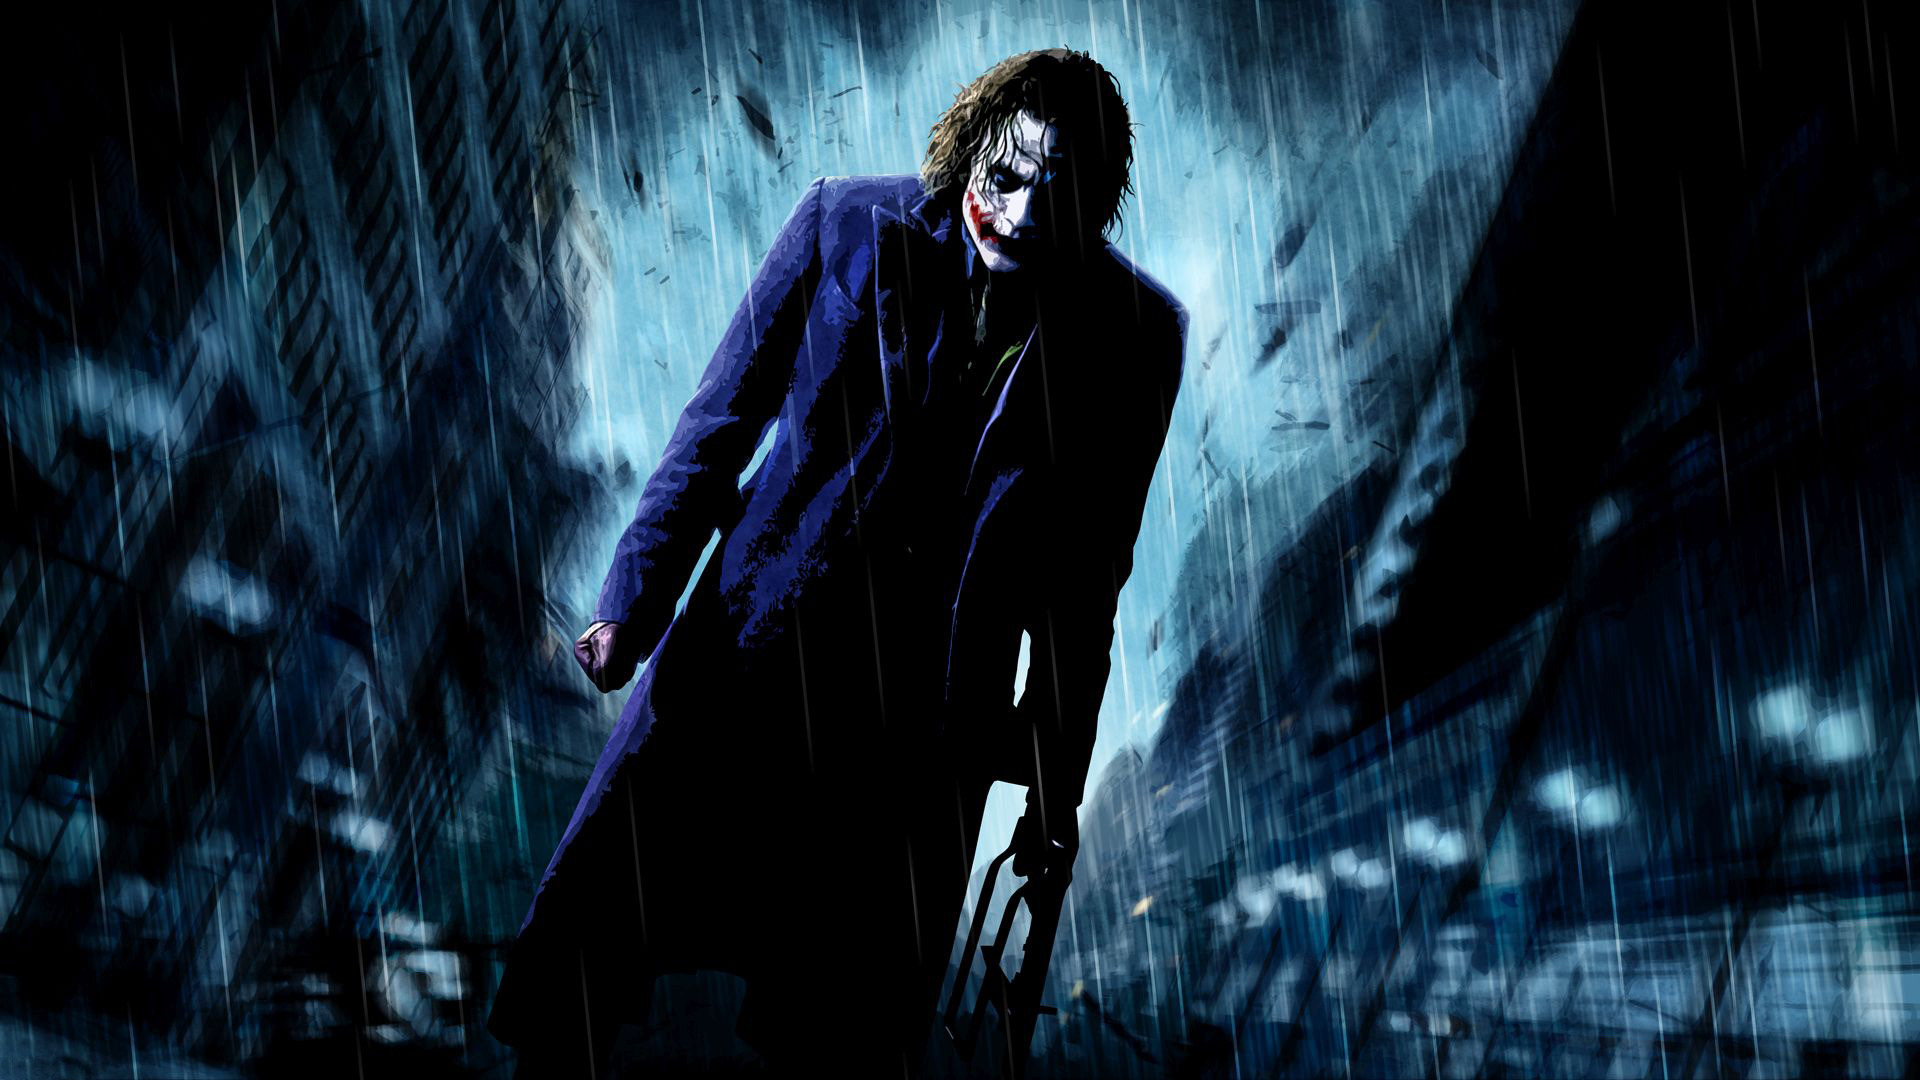 The Joker   The Dark Knight wallpaper 20416 1920x1080